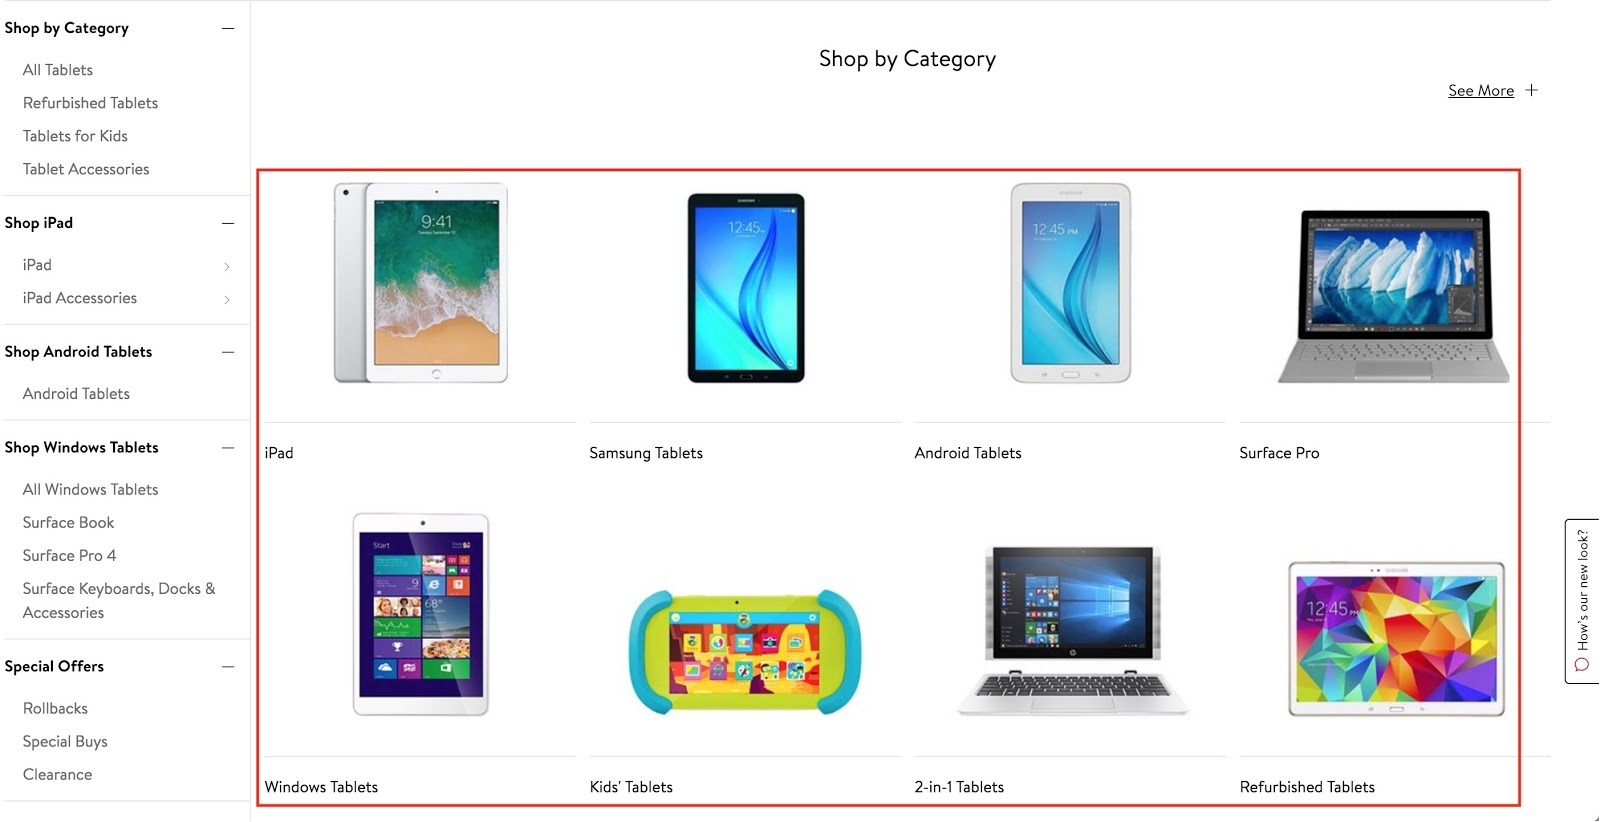 Screenshot showing different categories of electronics